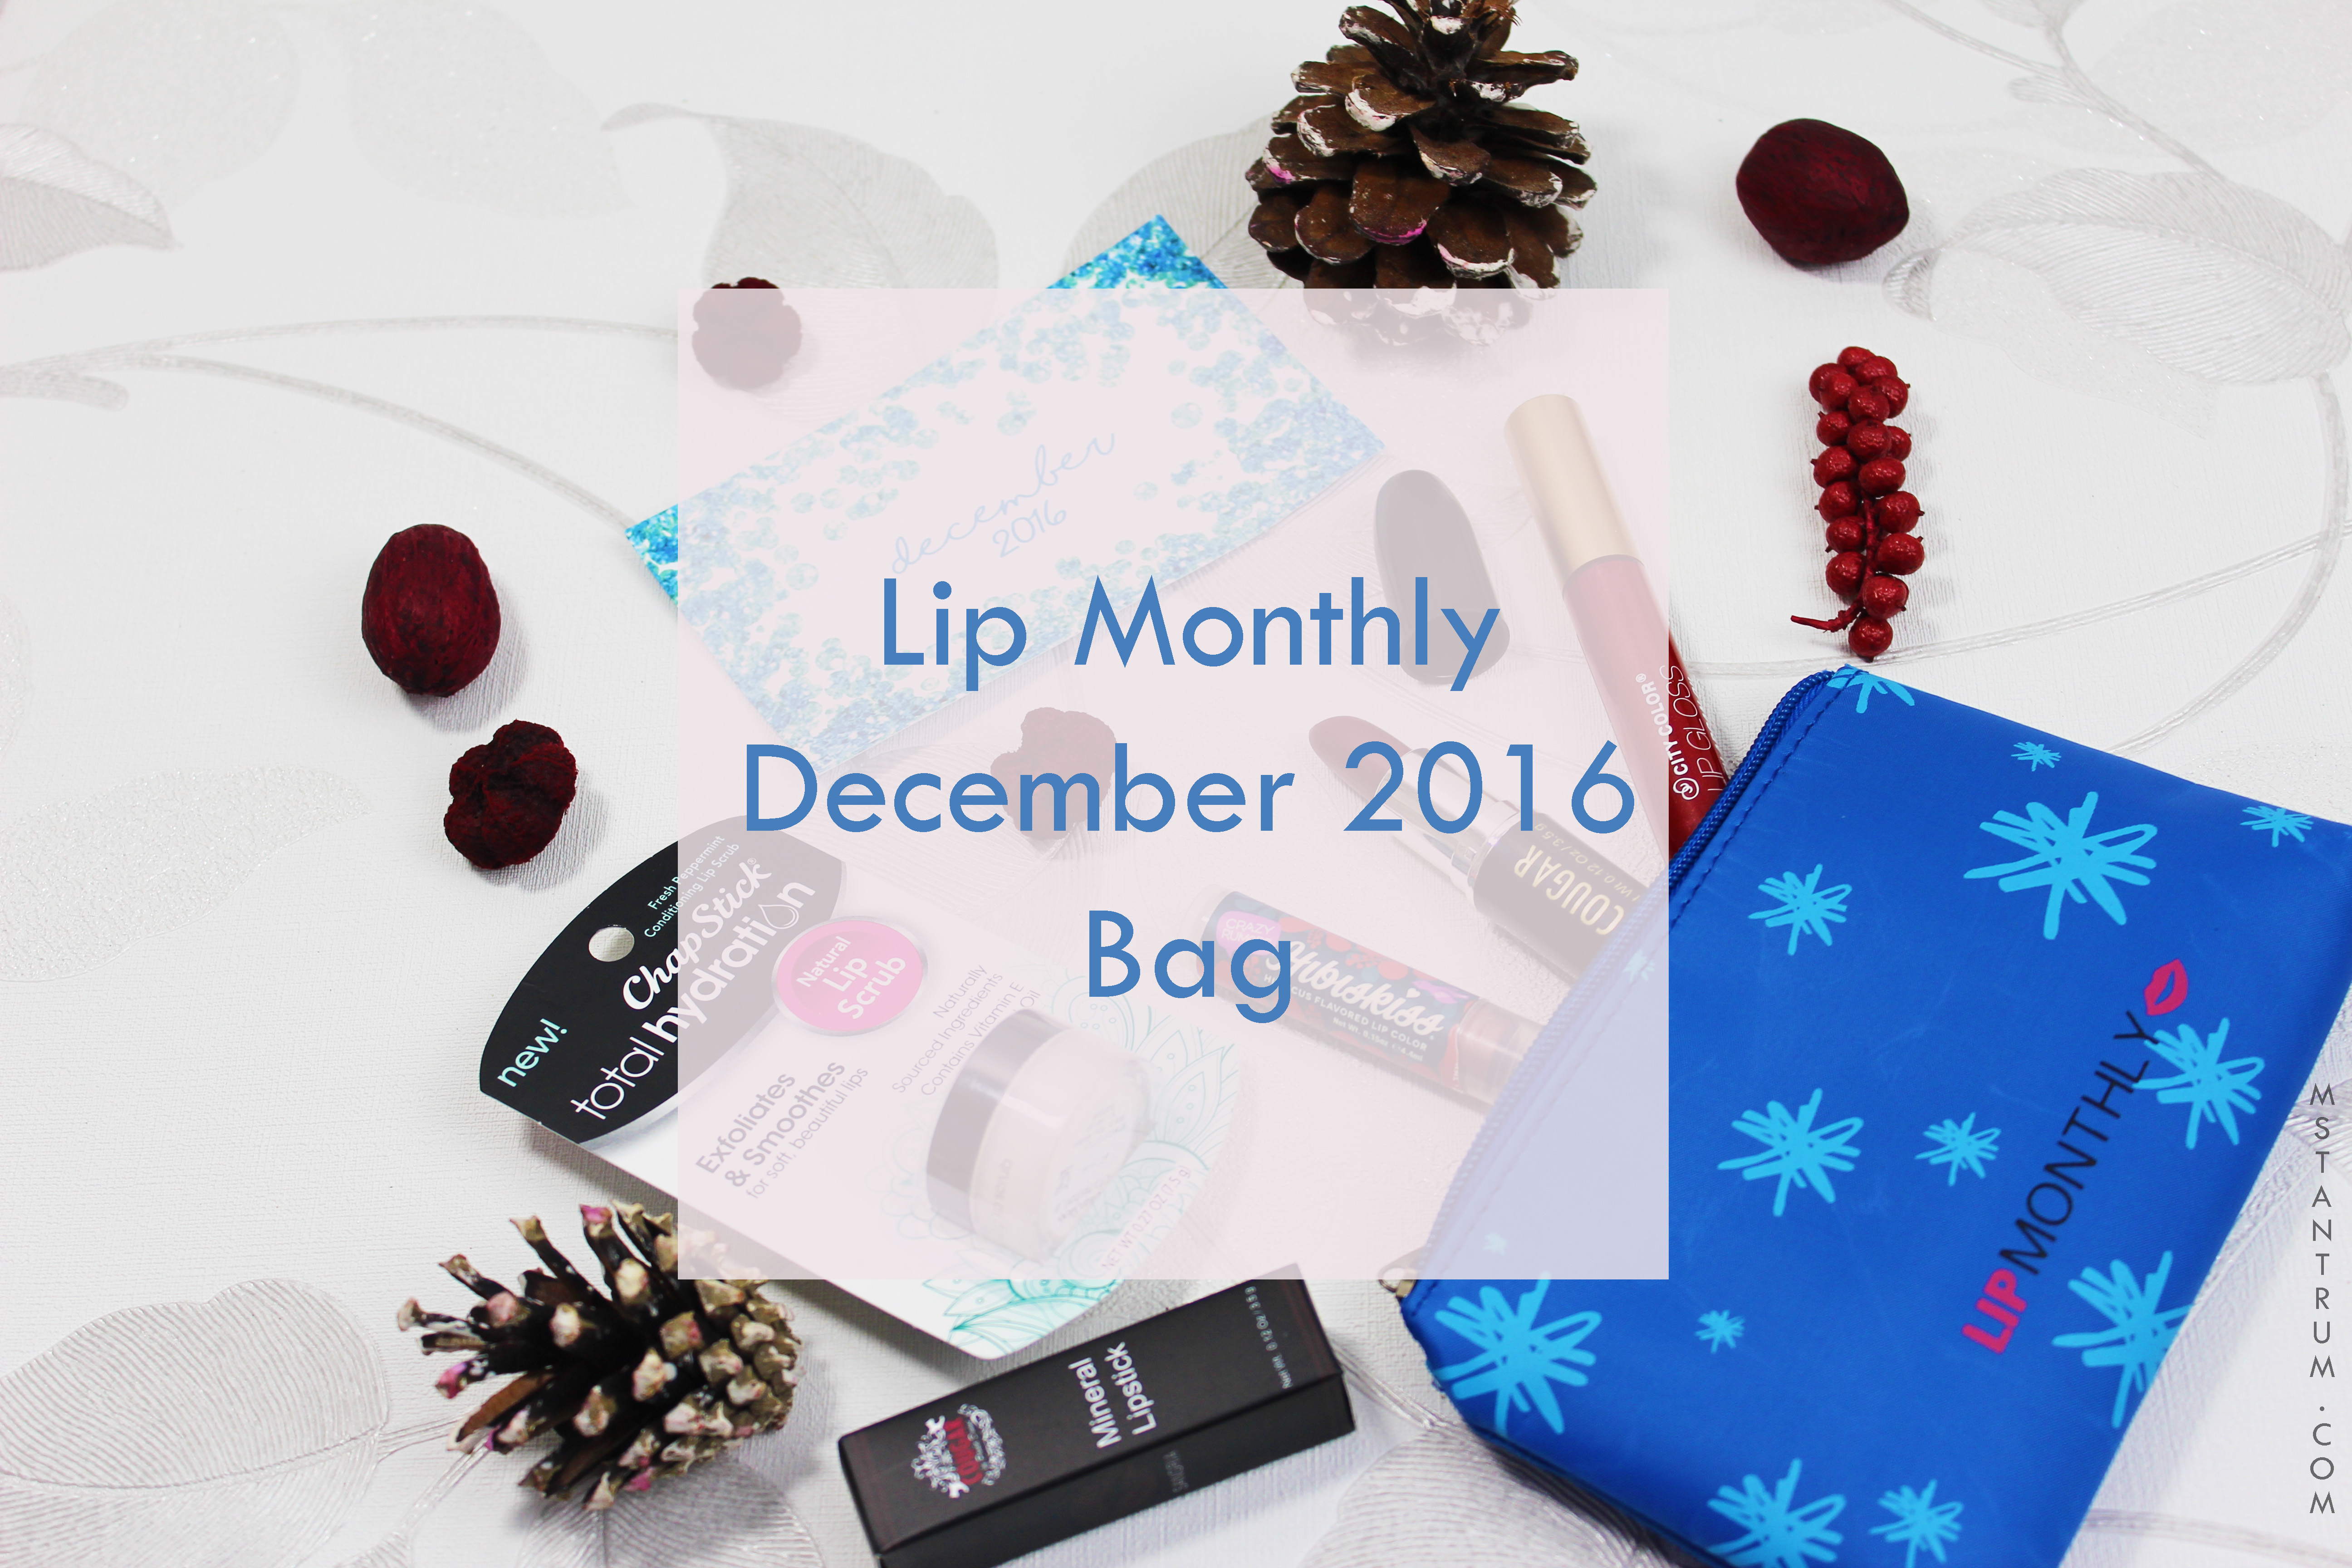 Lip Monthly December 2016.